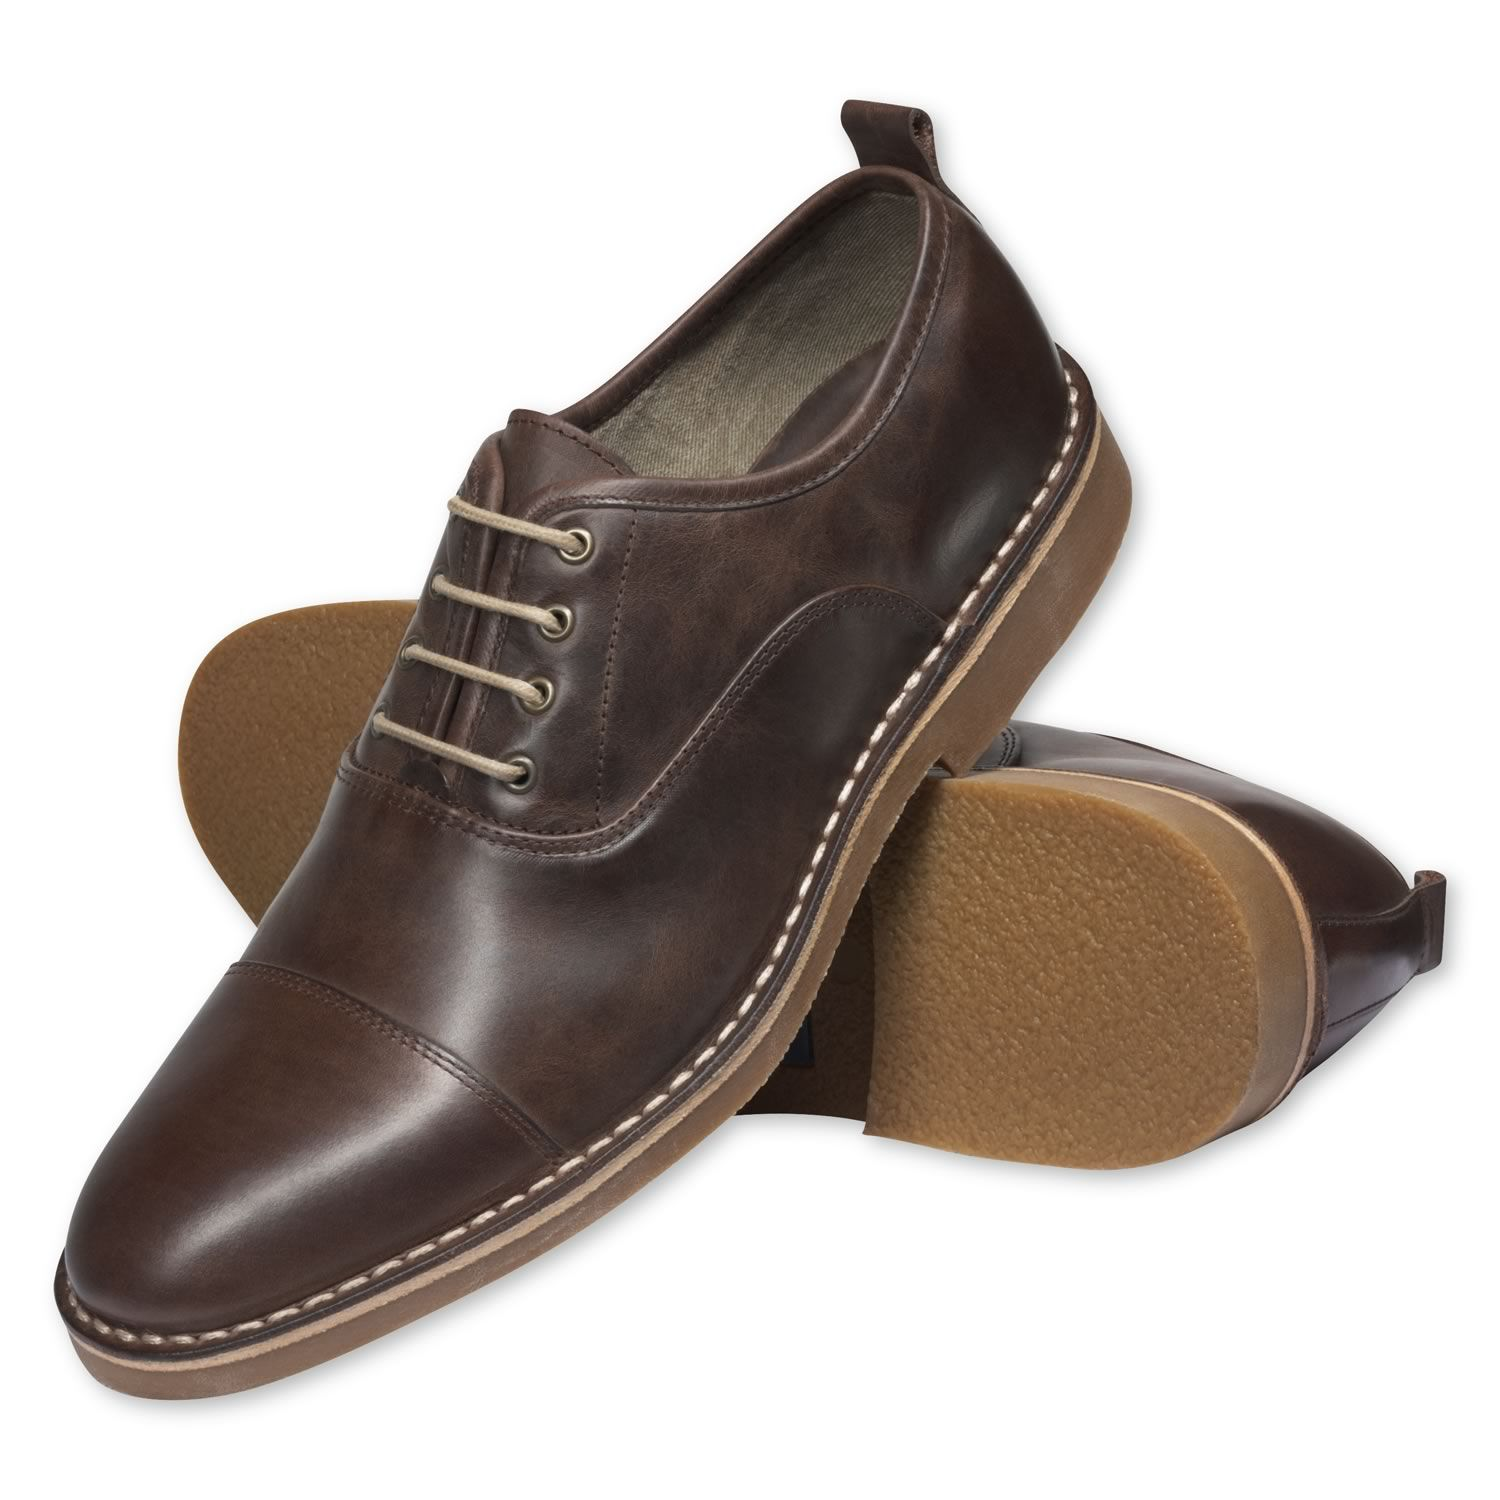 8151691e7 Brown Portobello Oxford shoes